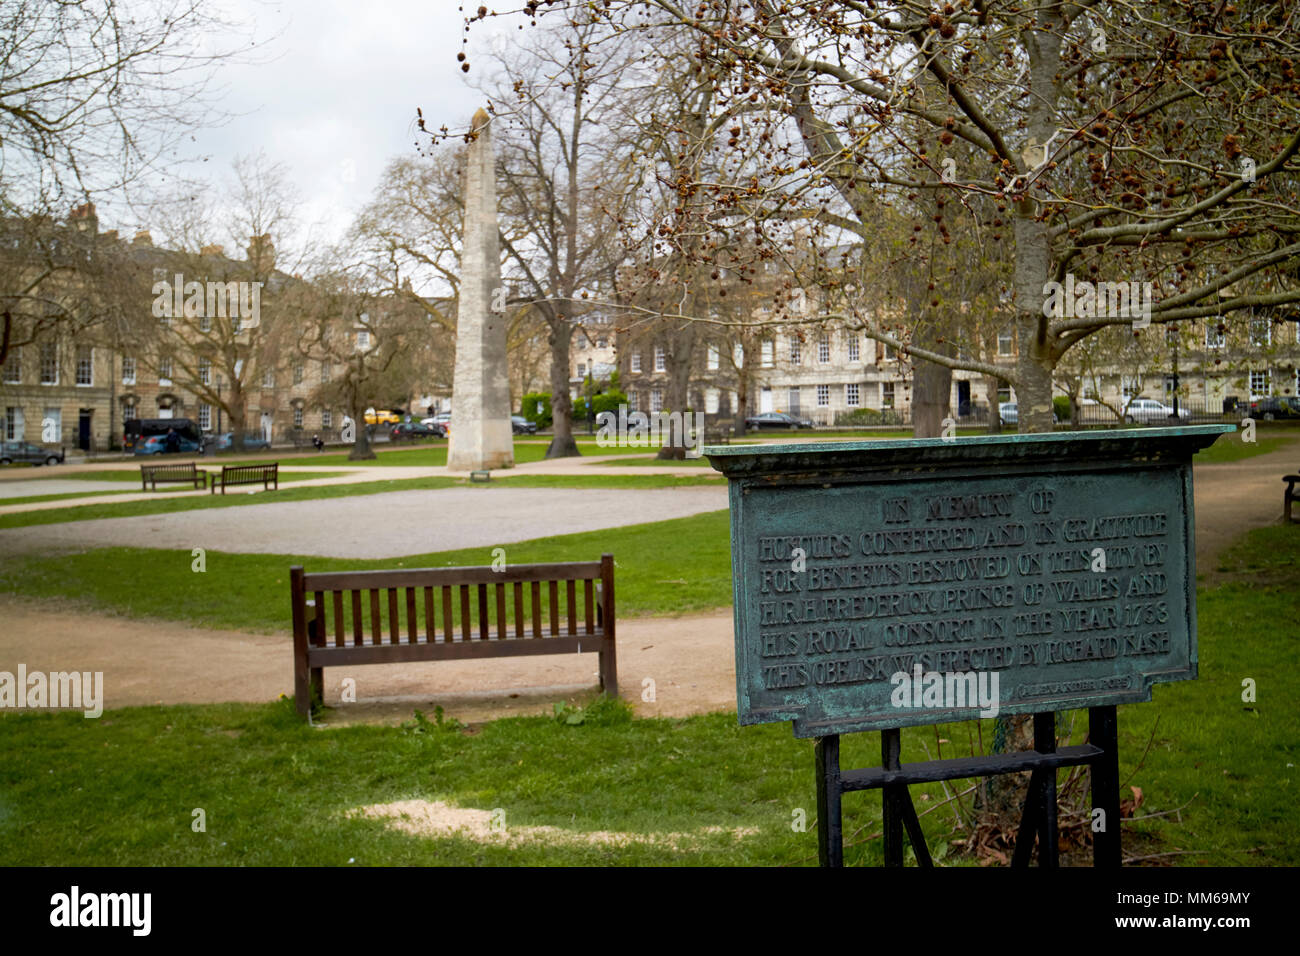 Queen Square Garden and obelisk Bath erected by Beau Nash in honour of Frederick Prince of Wales England UK - Stock Image